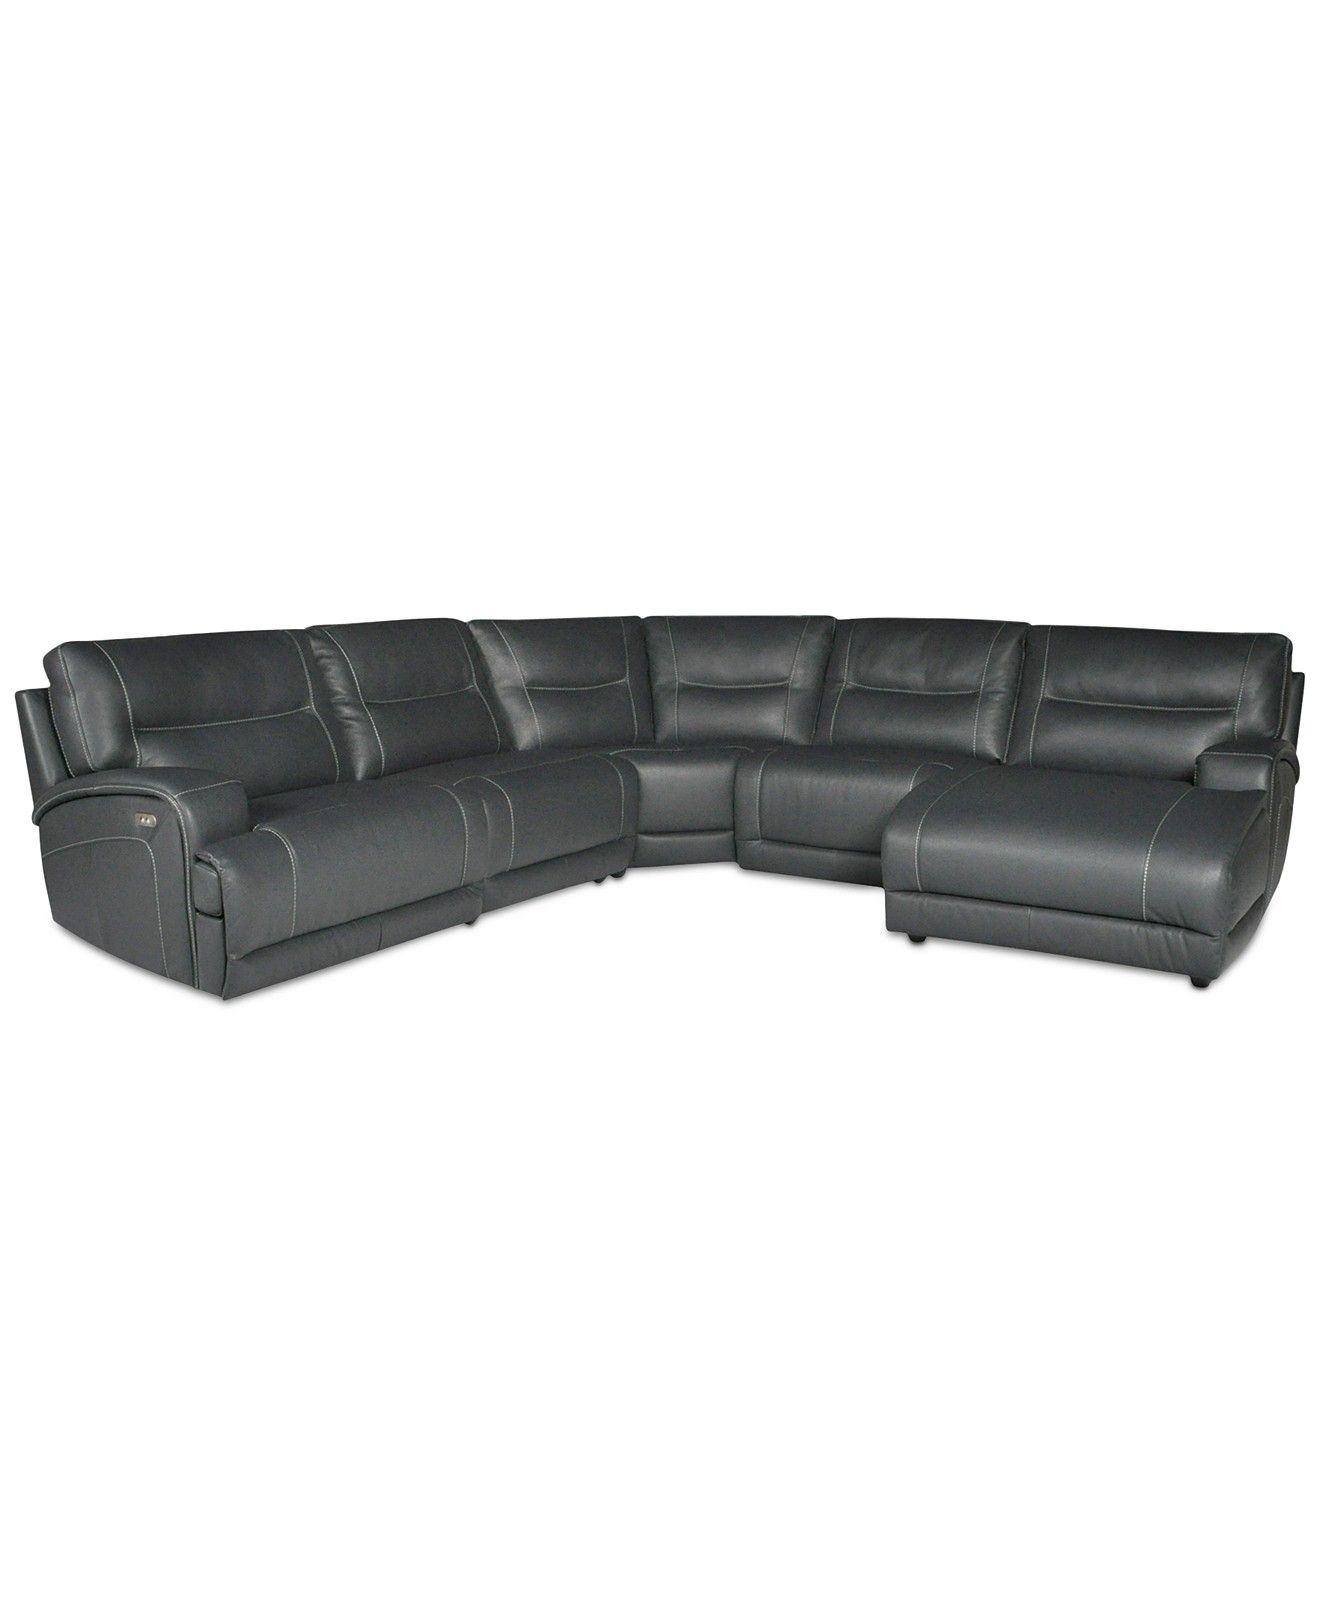 Caruso Leather 5 Piece Chaise Sectional Sofa with 1 Powered